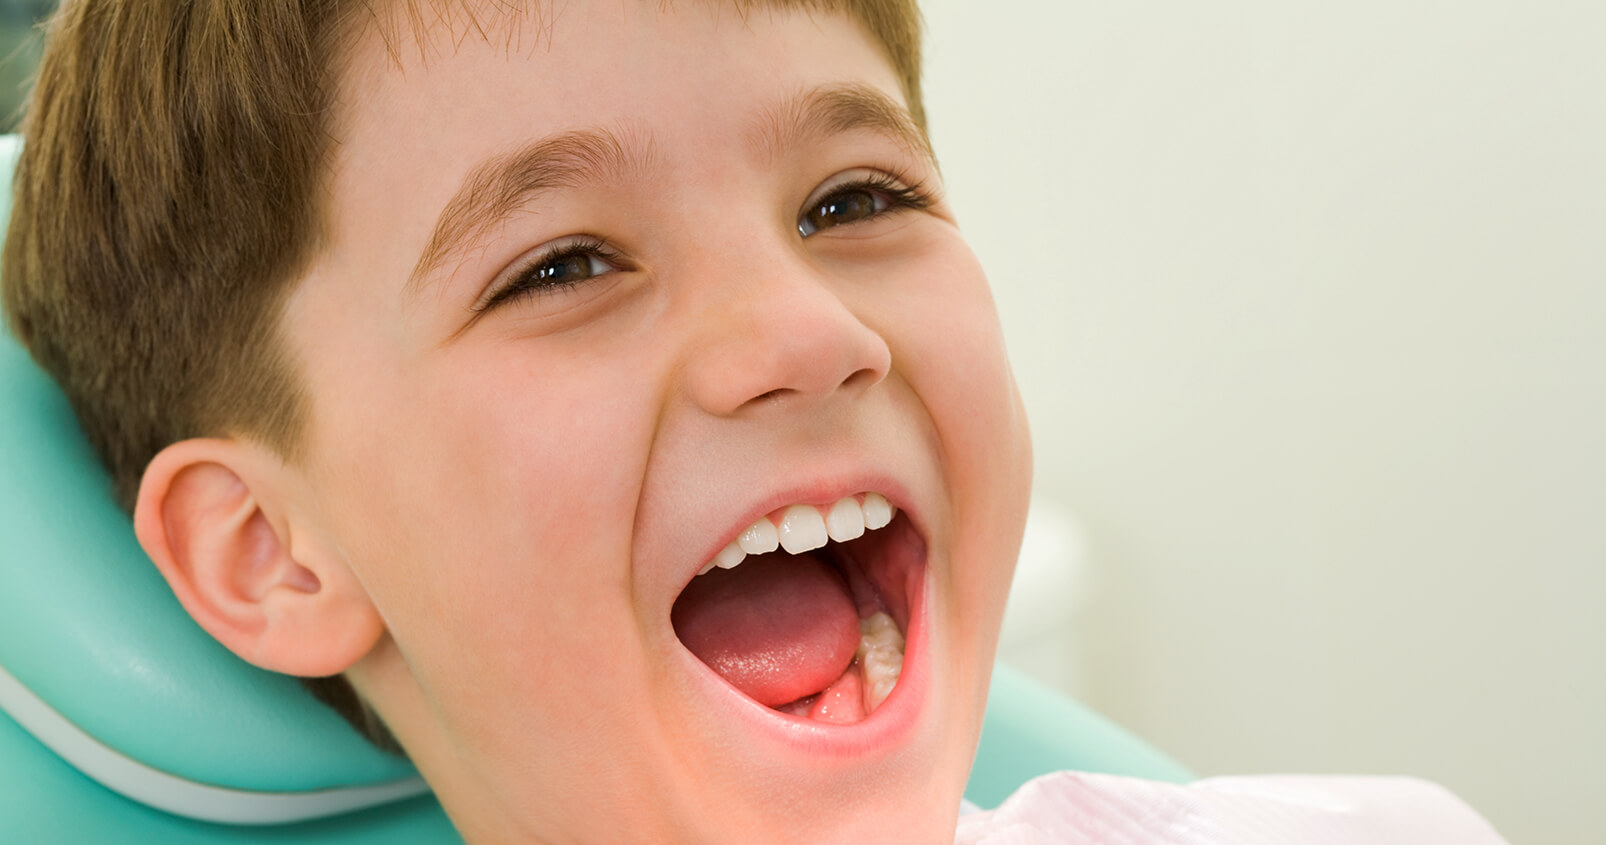 Children's Dental Office at Gentle Care Dentistry in Azusa Ca Area